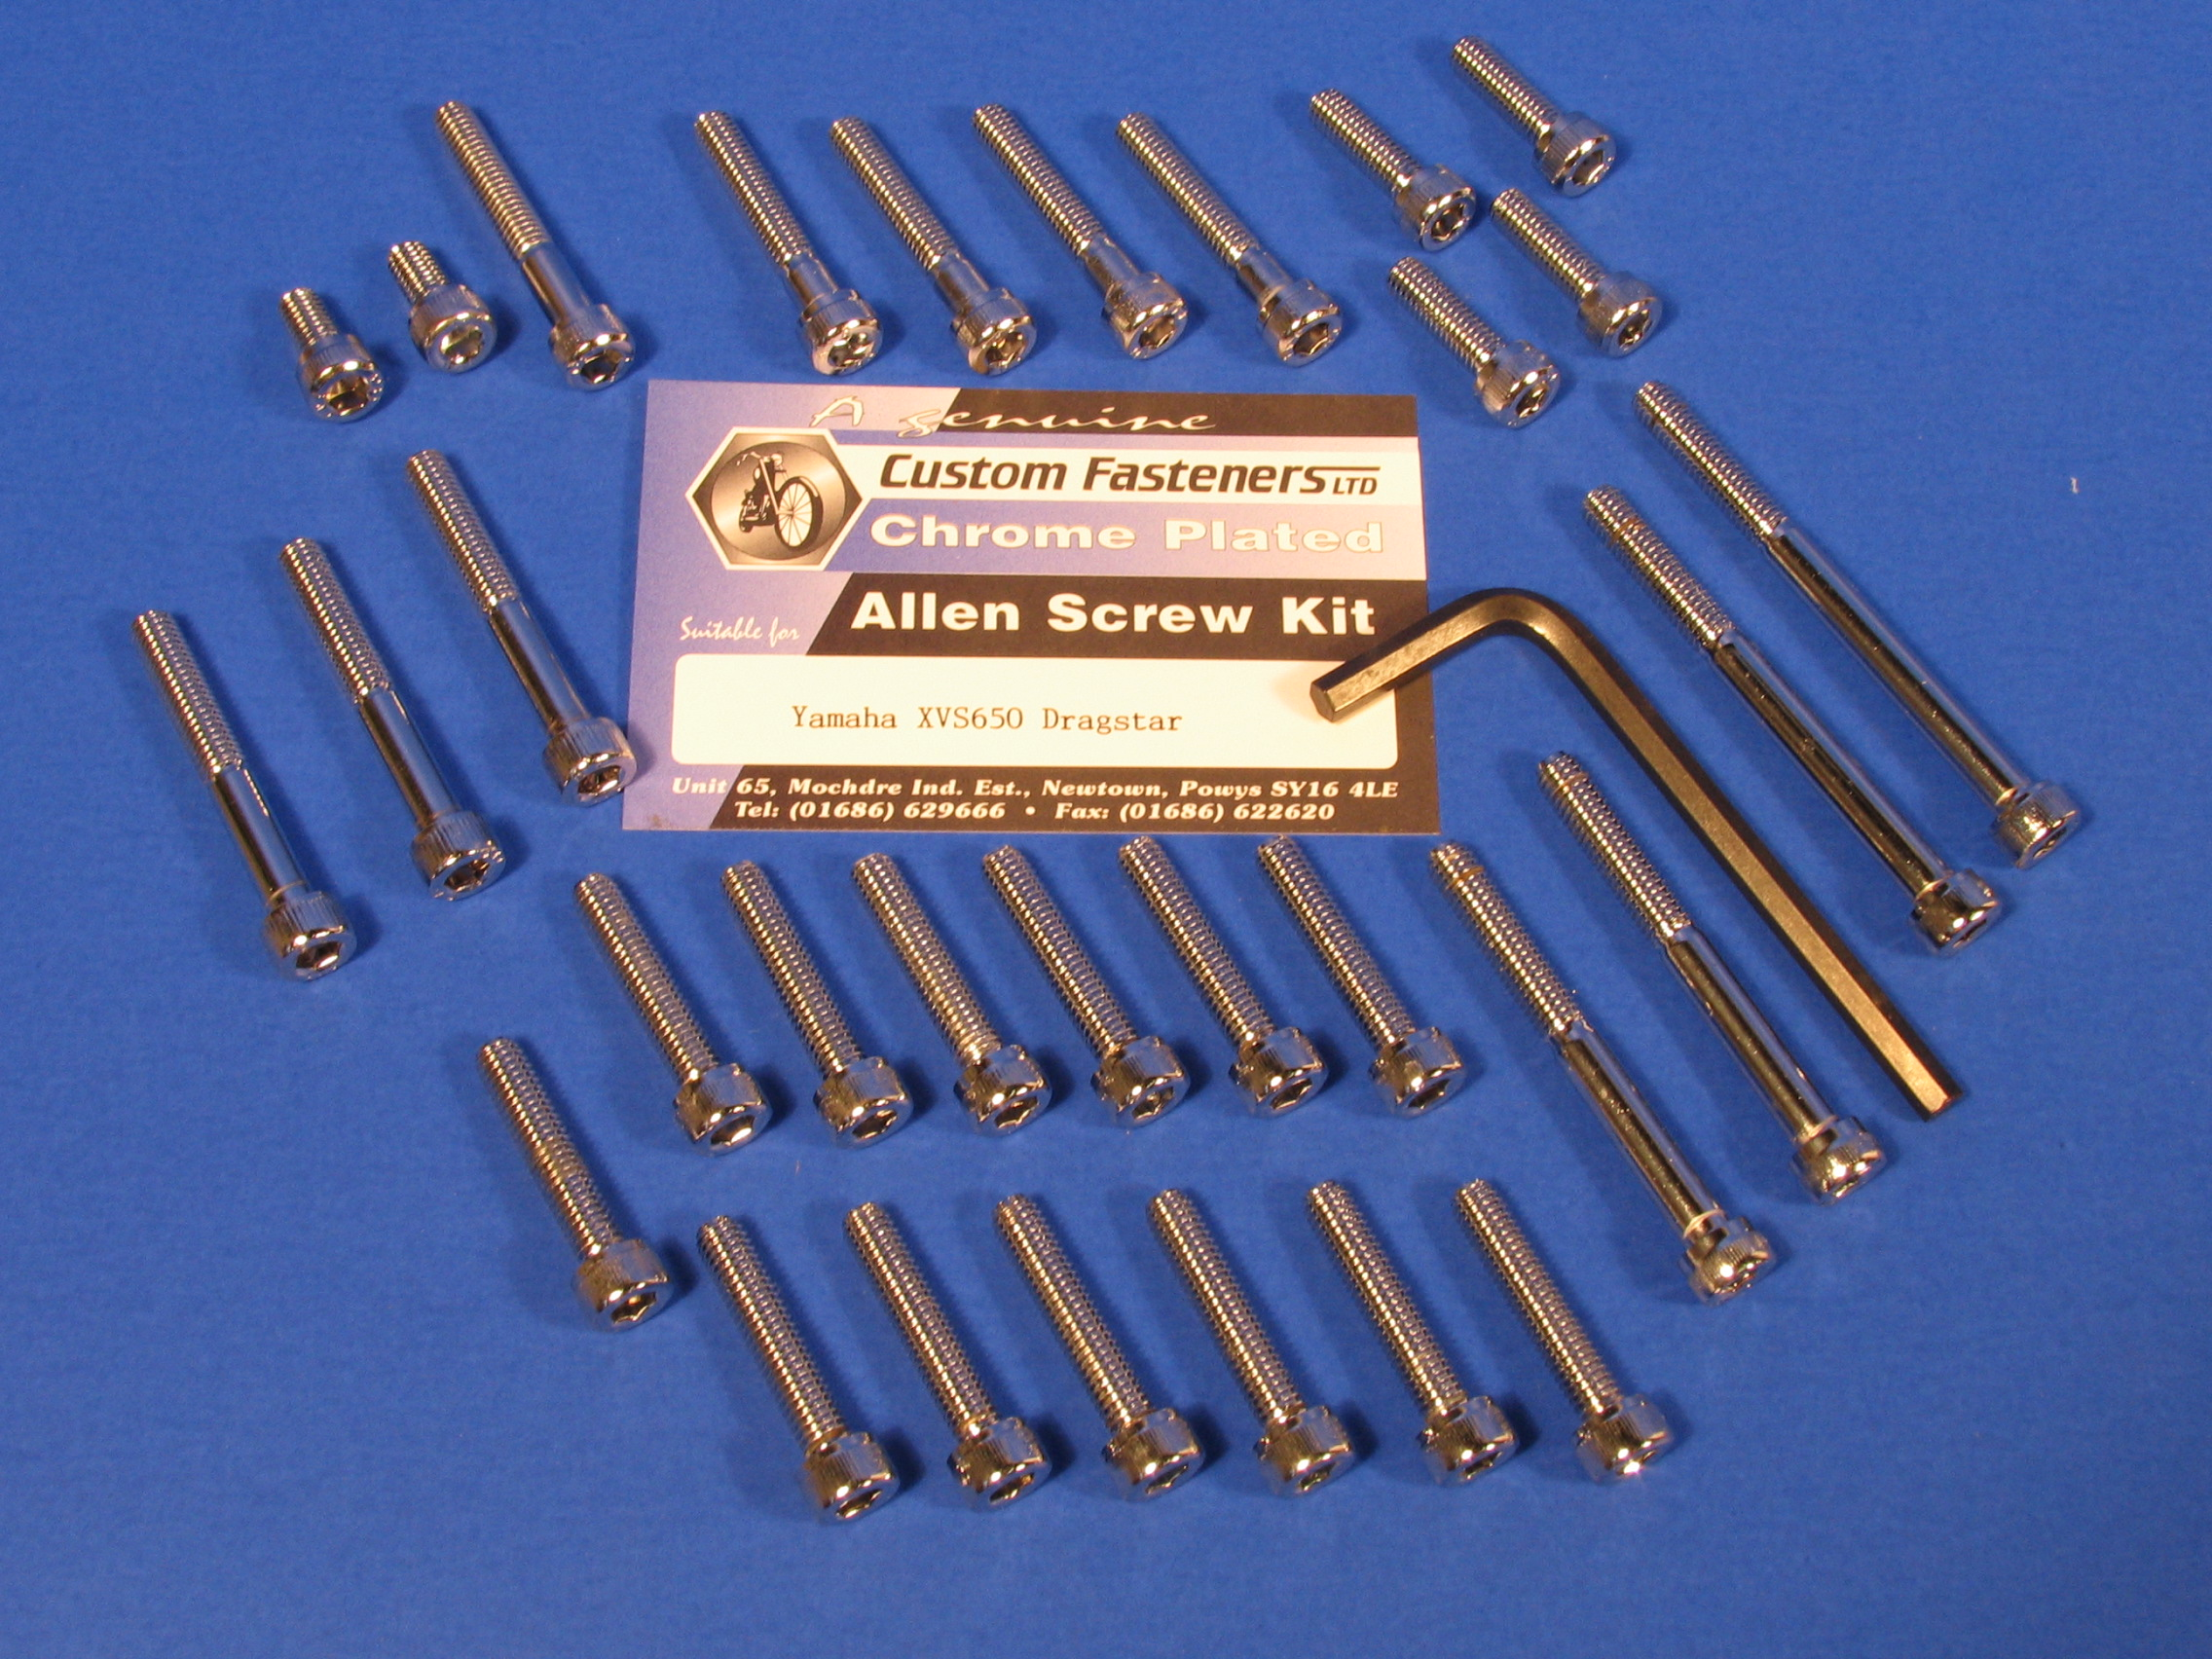 Moto-Guzzi Allen Screw Kits